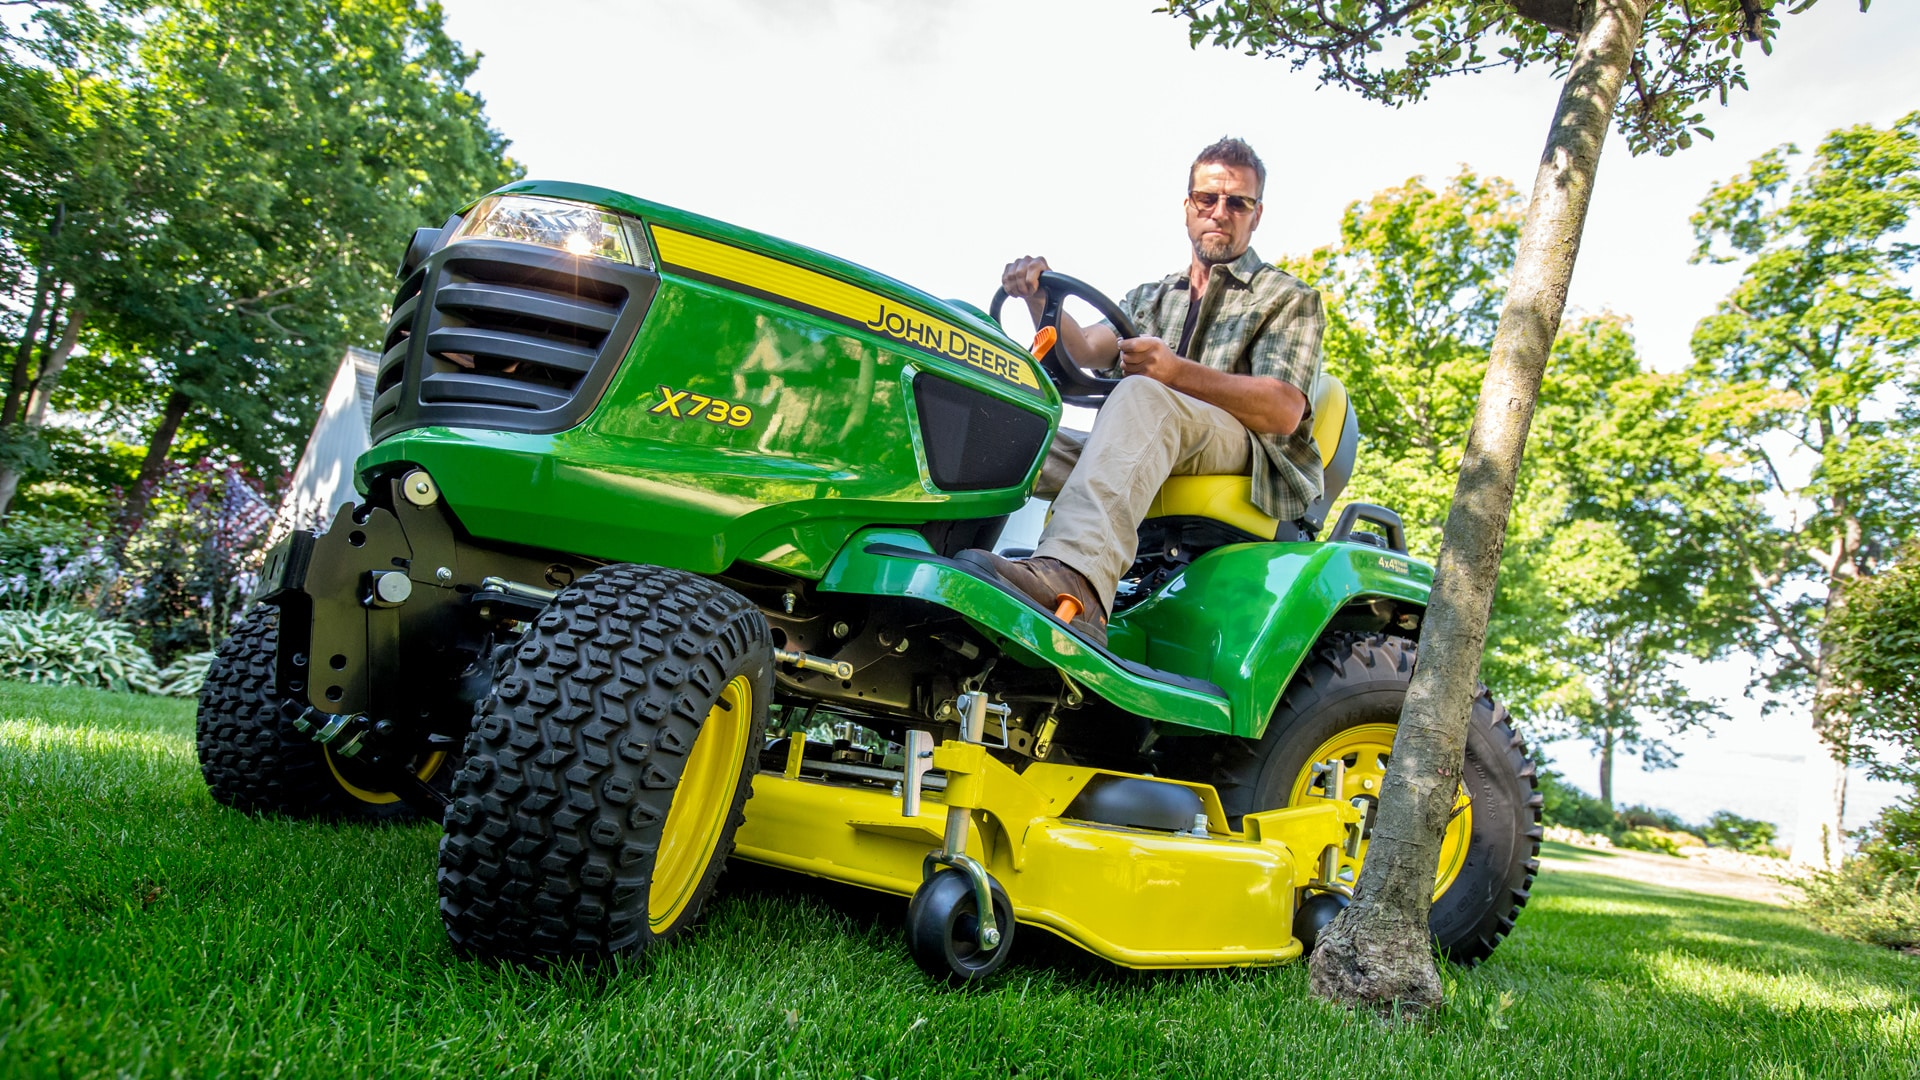 dramatic angle view of lawn tractor on lawn